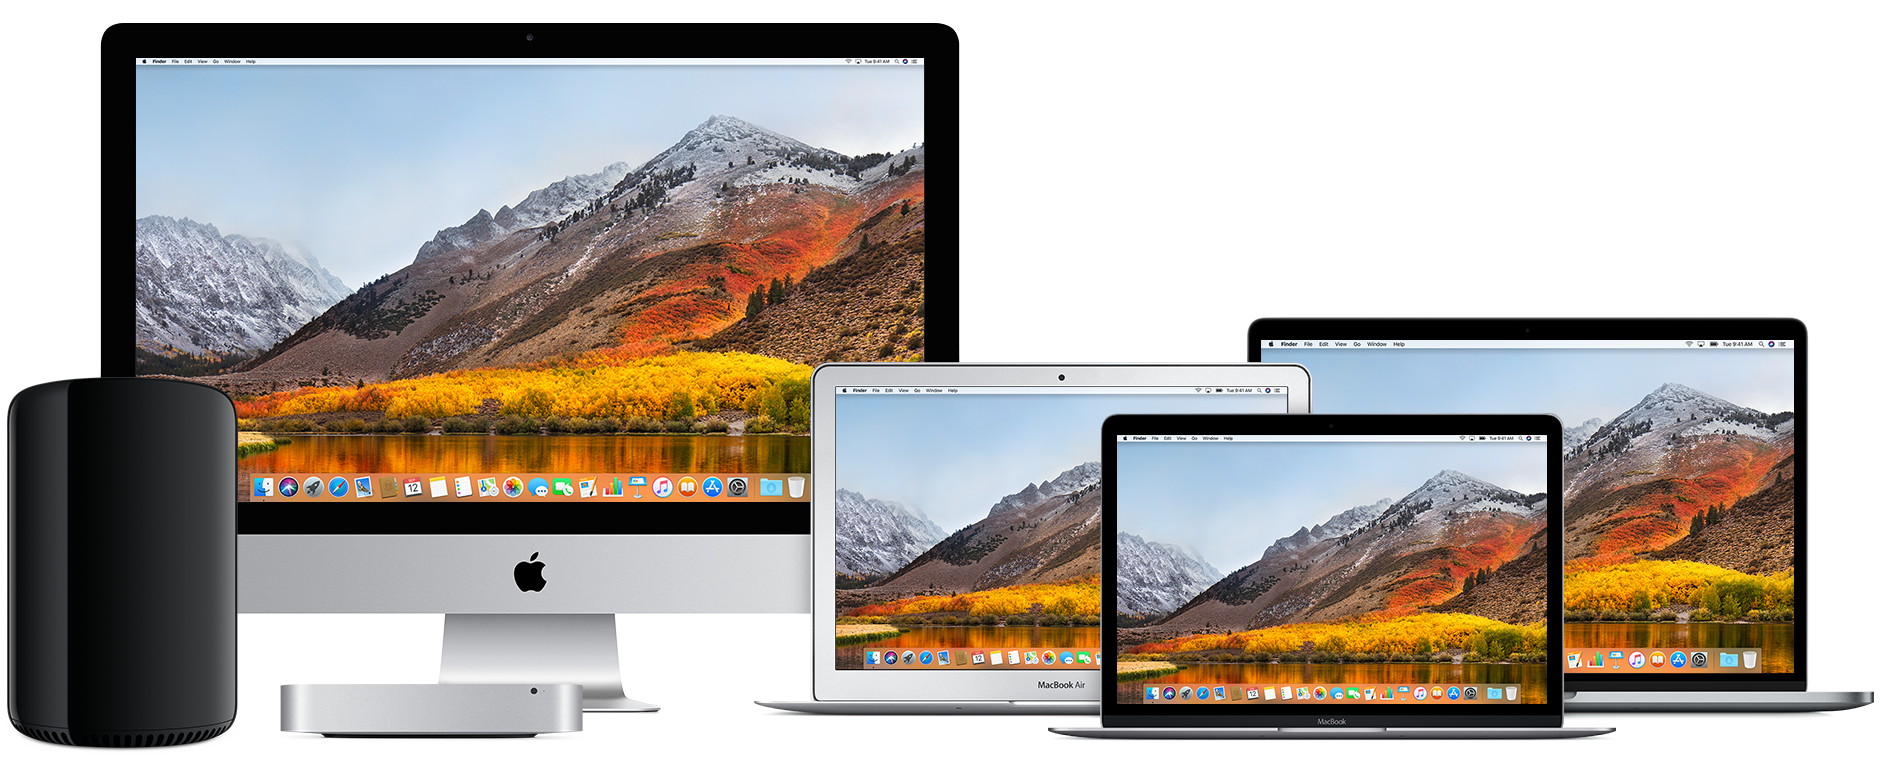 Família de Macs (Mac Pro, iMac, Mac mini, MacBook Air, MacBook e MacBook Pro)